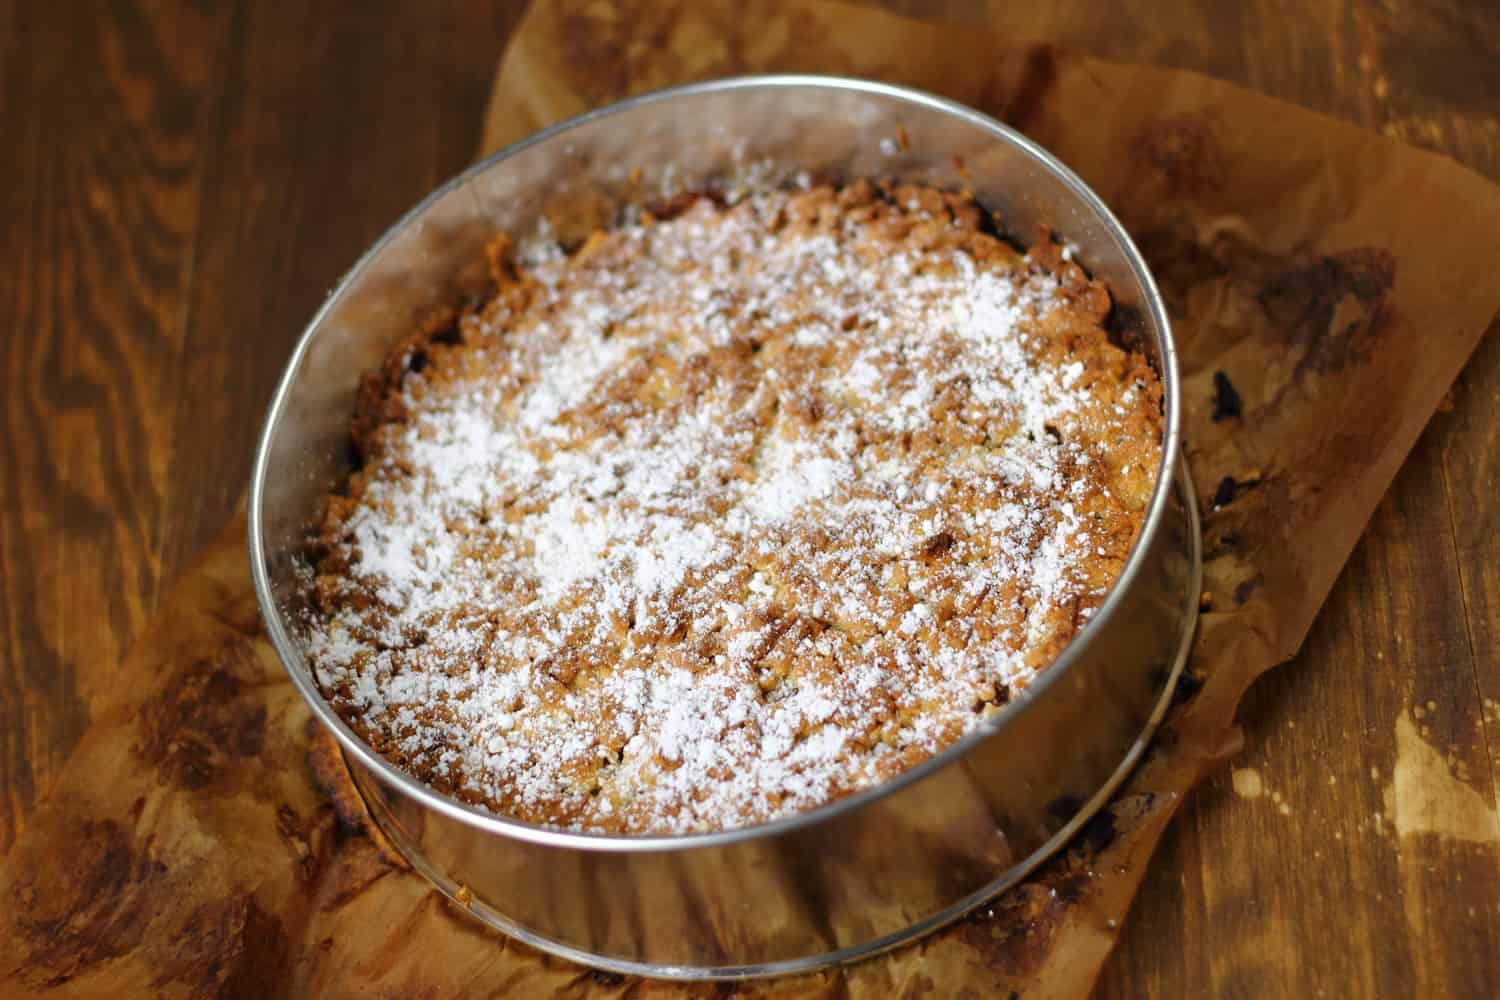 A freshly baked apple pie sprinkled with powdered white sugar